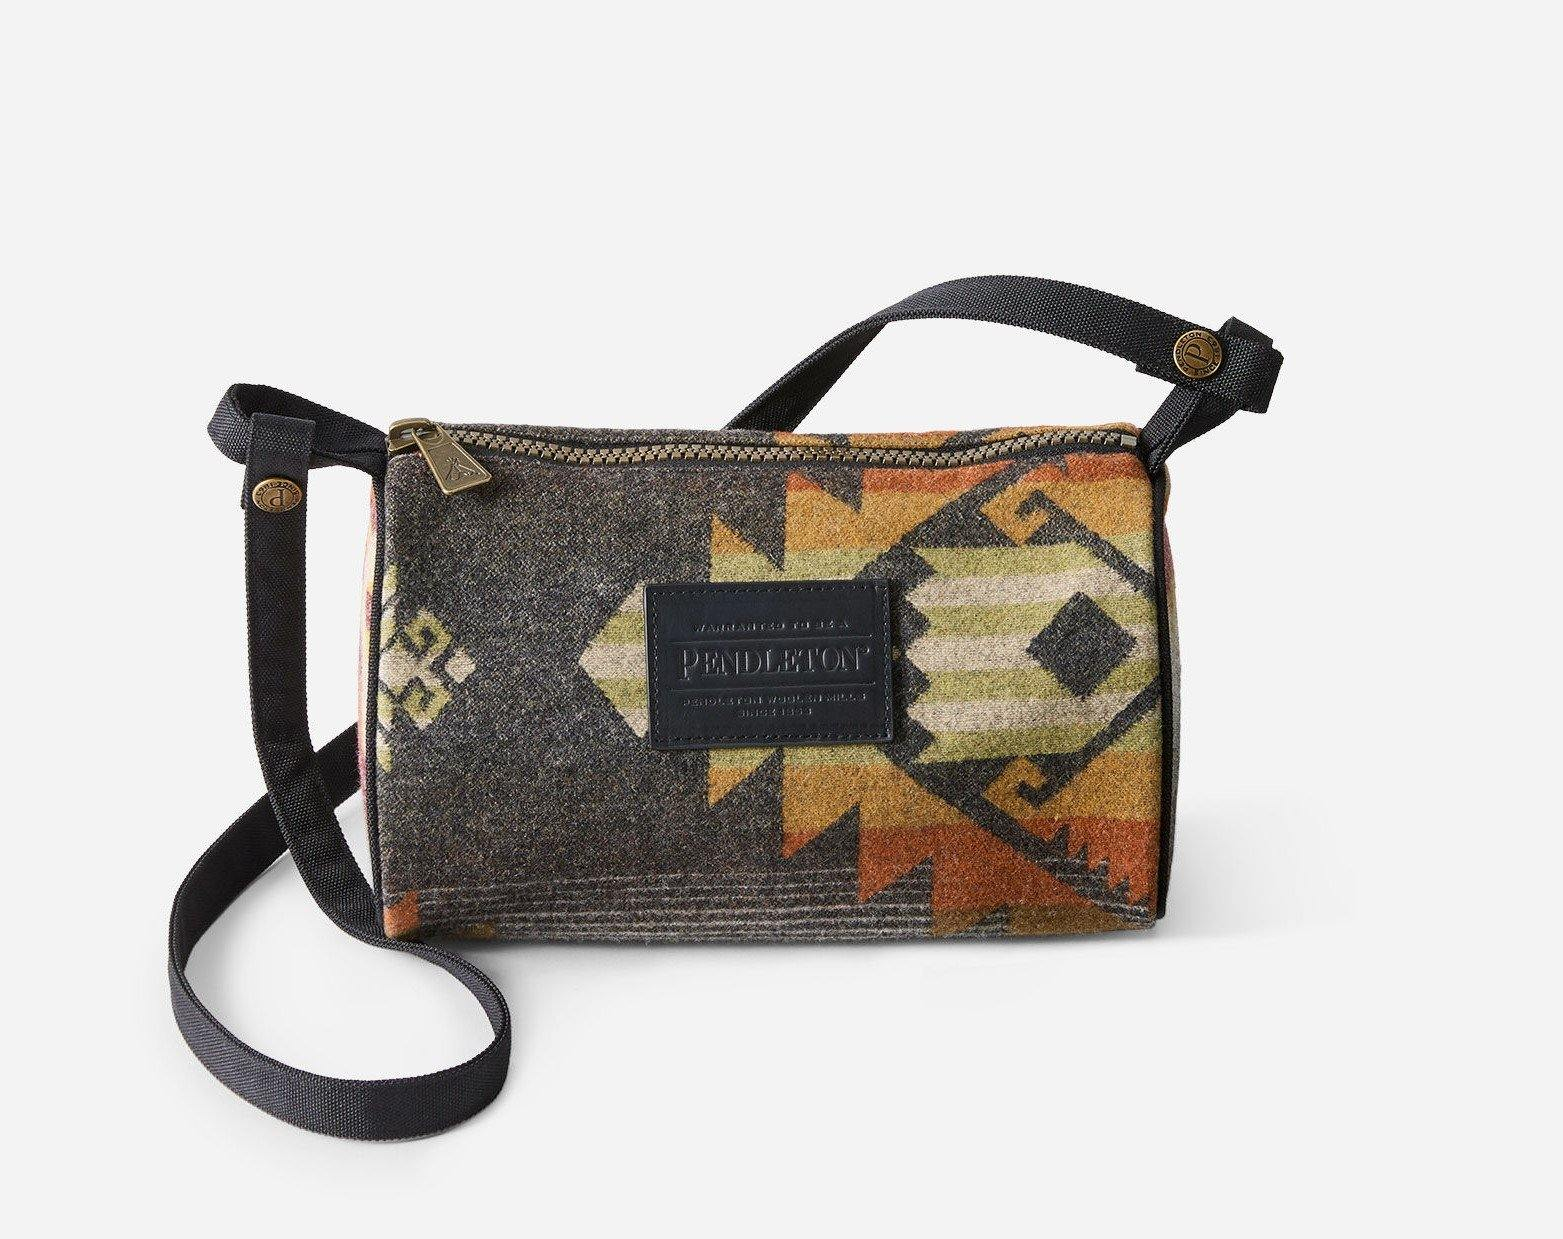 Pendleton® Travel Kit with Strap, Rock Creek